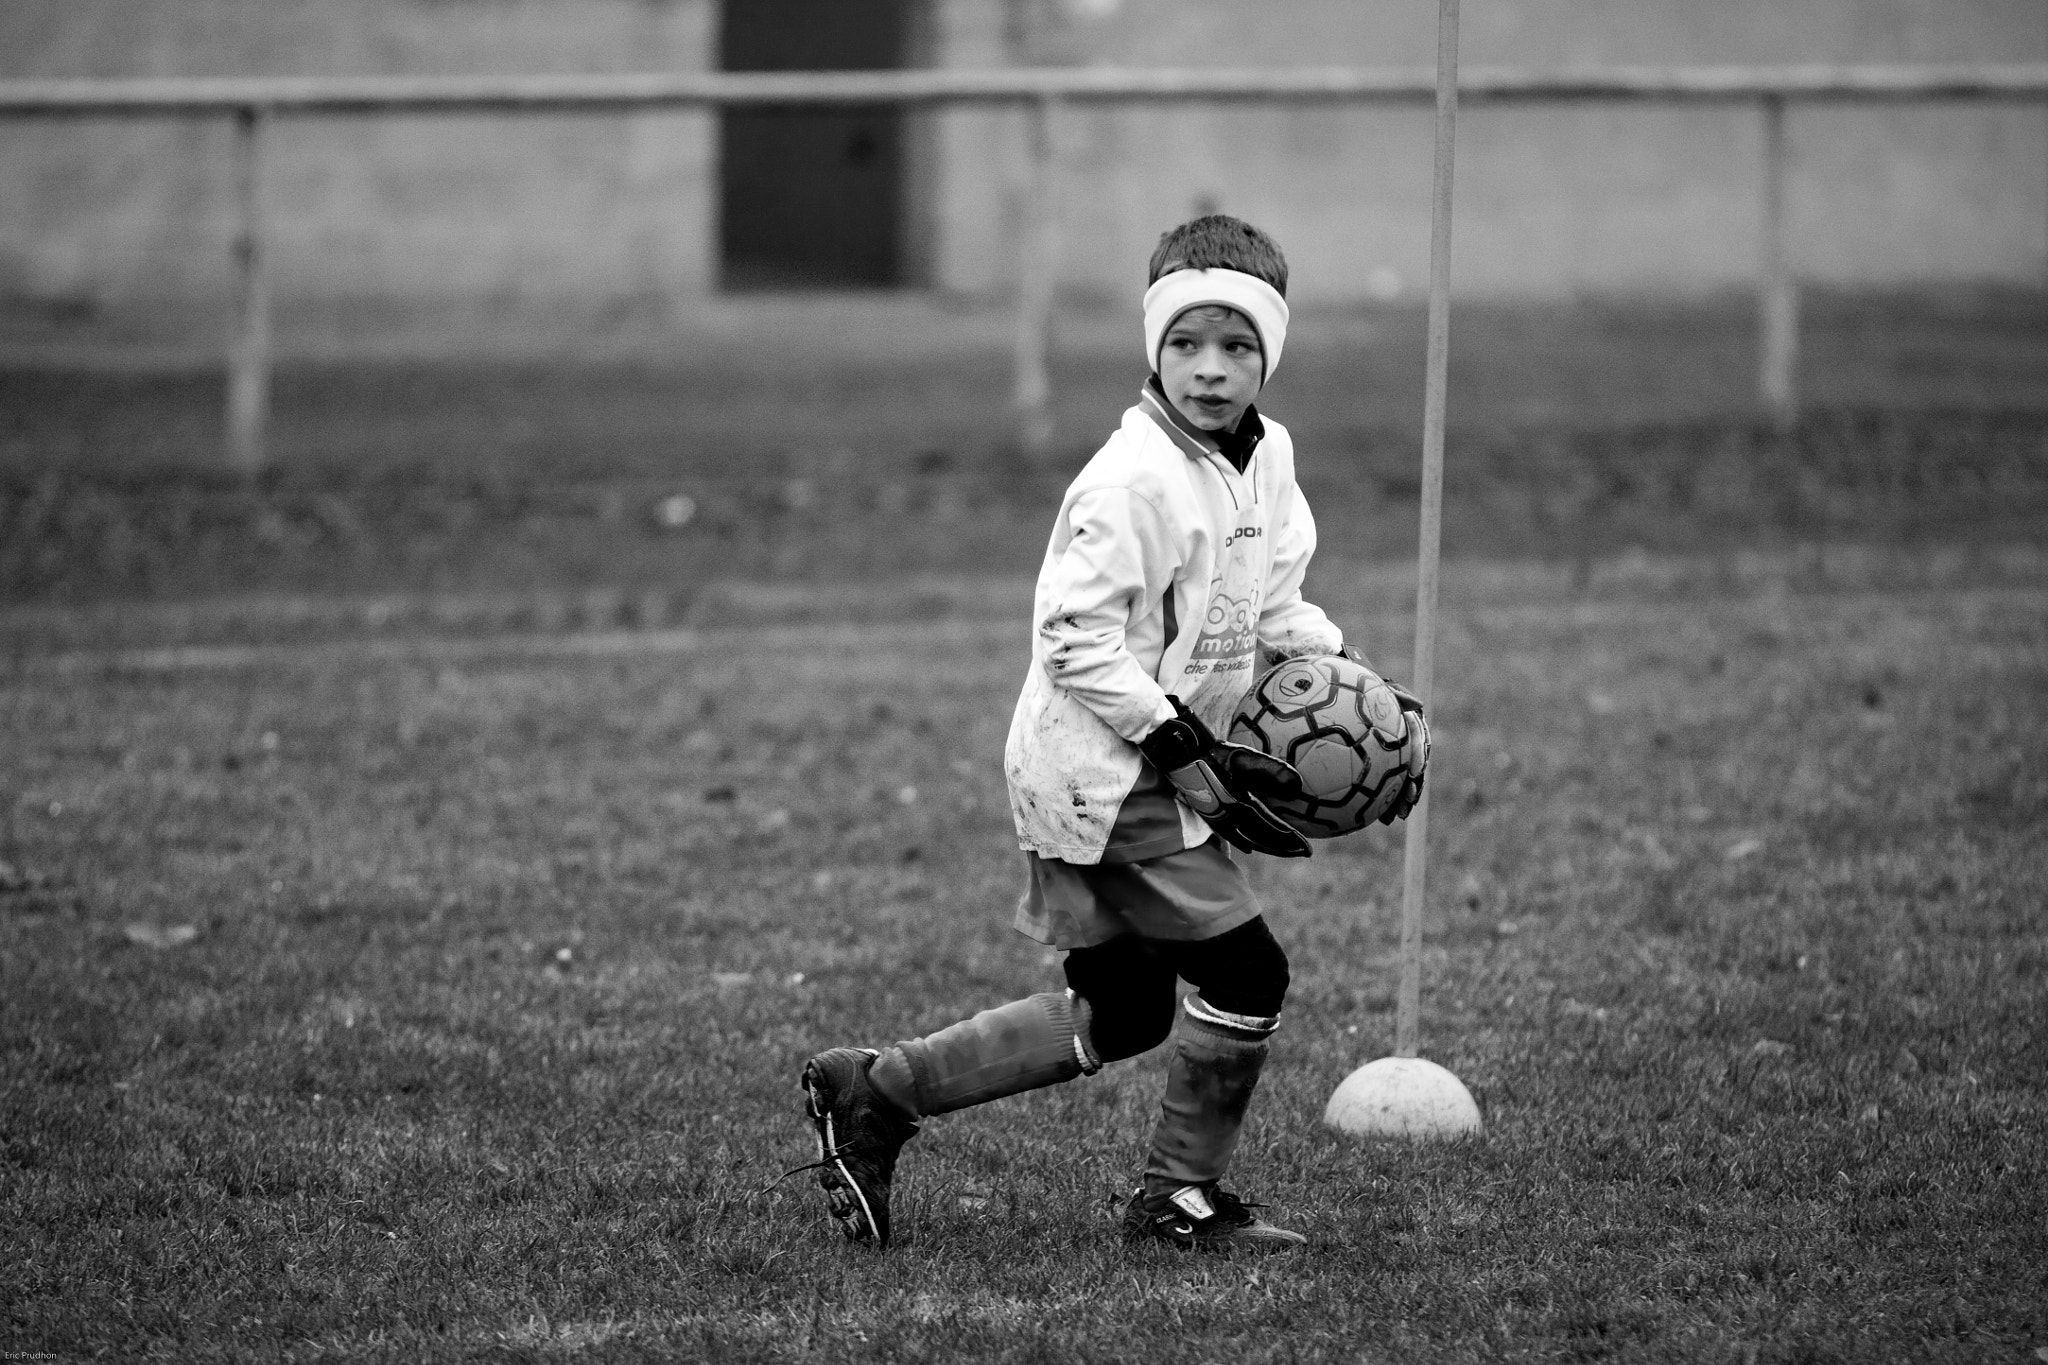 Photograph Kids & football by Eric Prudhon on 500px